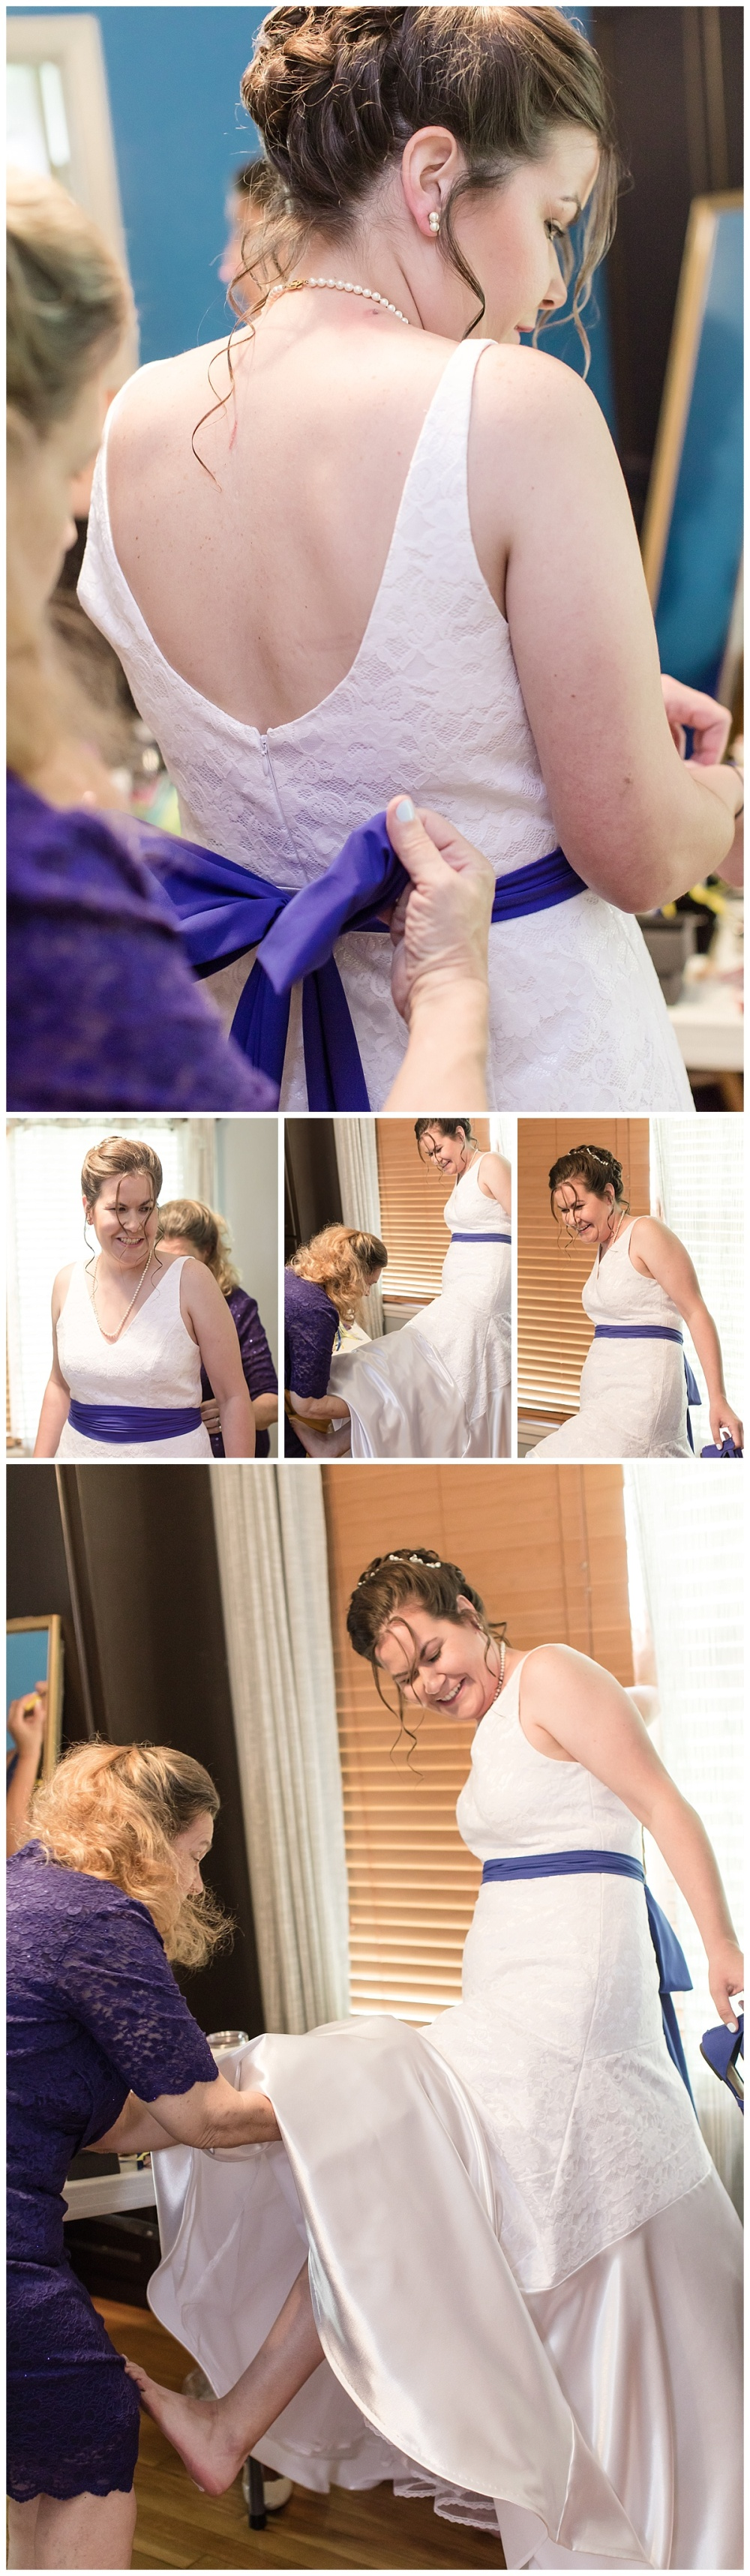 Texas-Wedding-Photographer-La-Coste-Our-Lady-Of-Grace-Church-Bride-Groom-Lego-Theme-Carly-Barton-Photography_0017.jpg